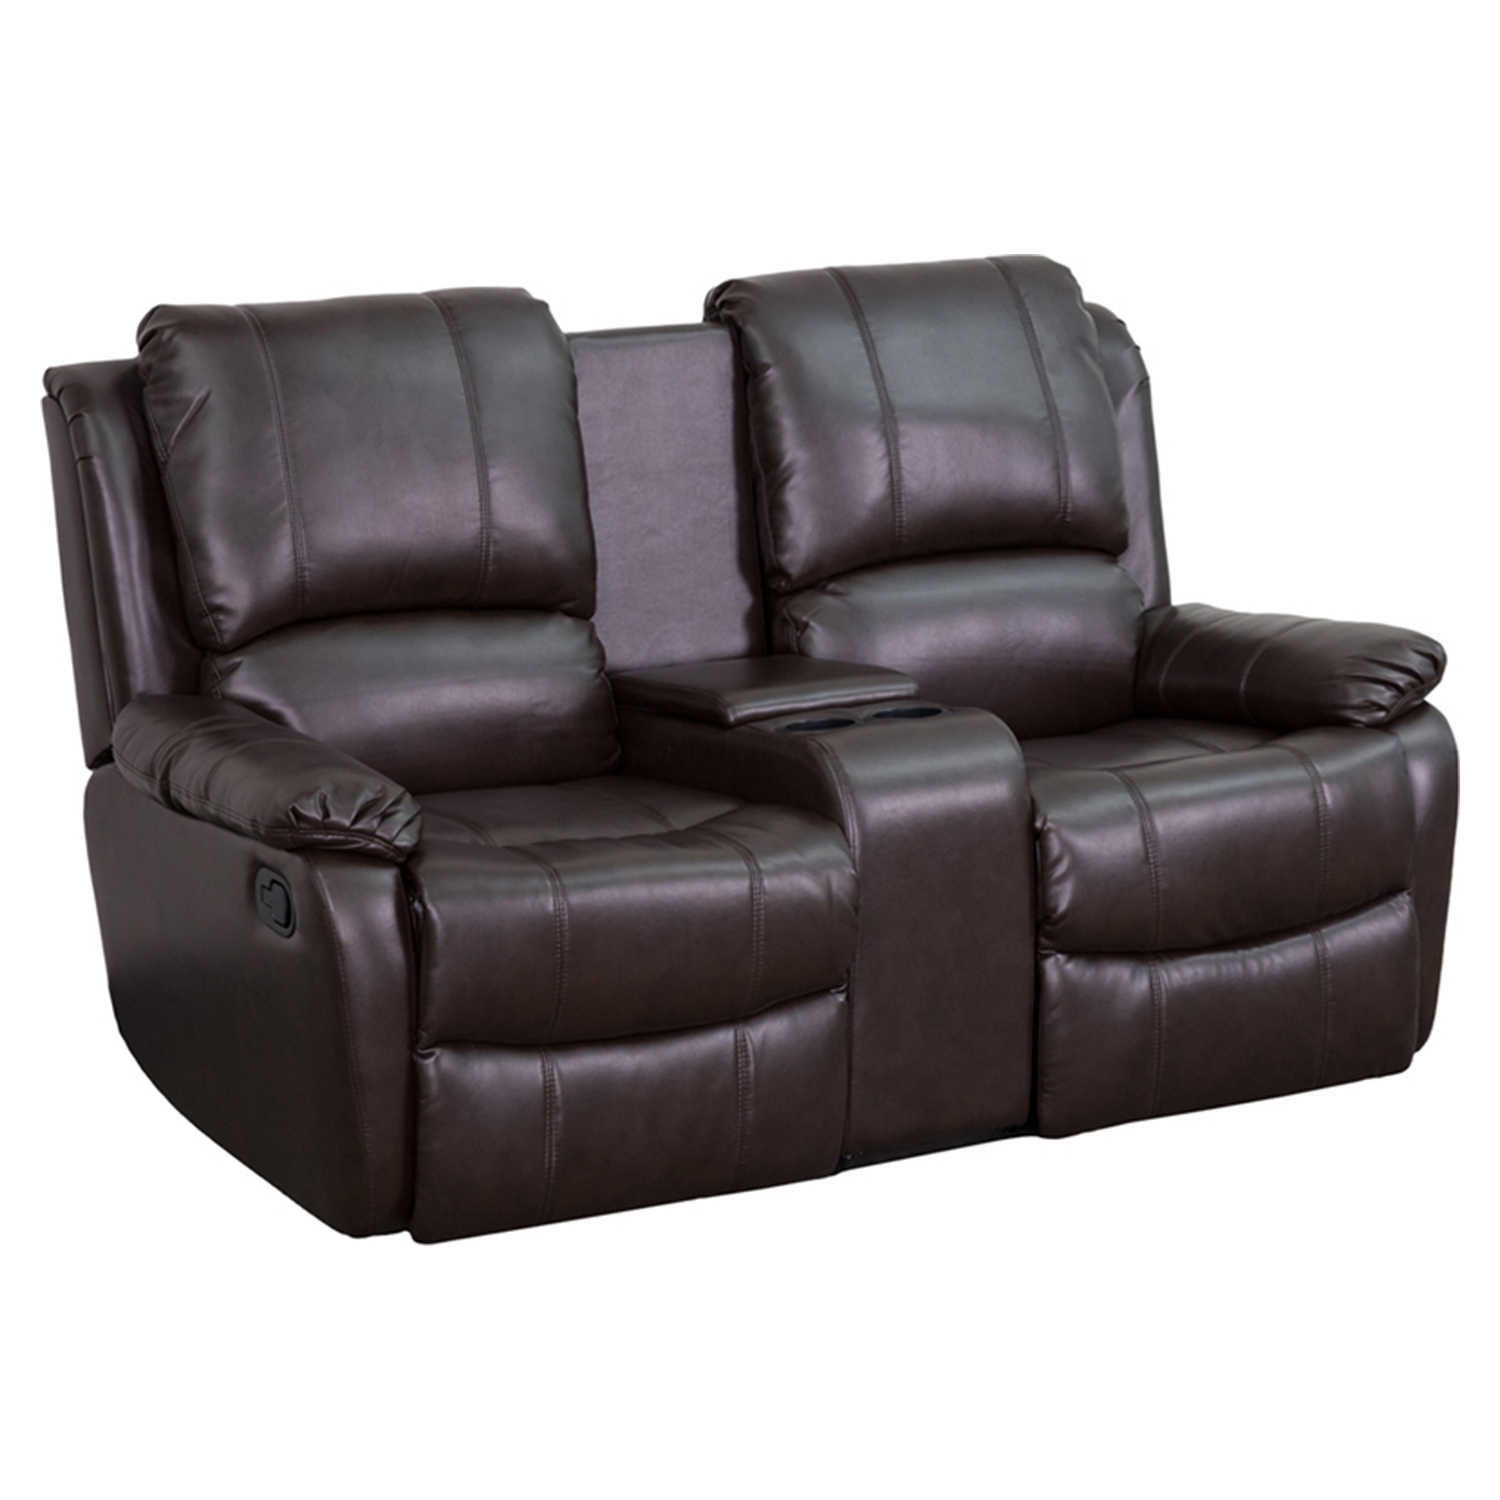 Allure Series 2-Seat Leather Recliner - Brown Cup Holders  sc 1 st  DCG Stores & Home Theater Seating | DCG Stores islam-shia.org